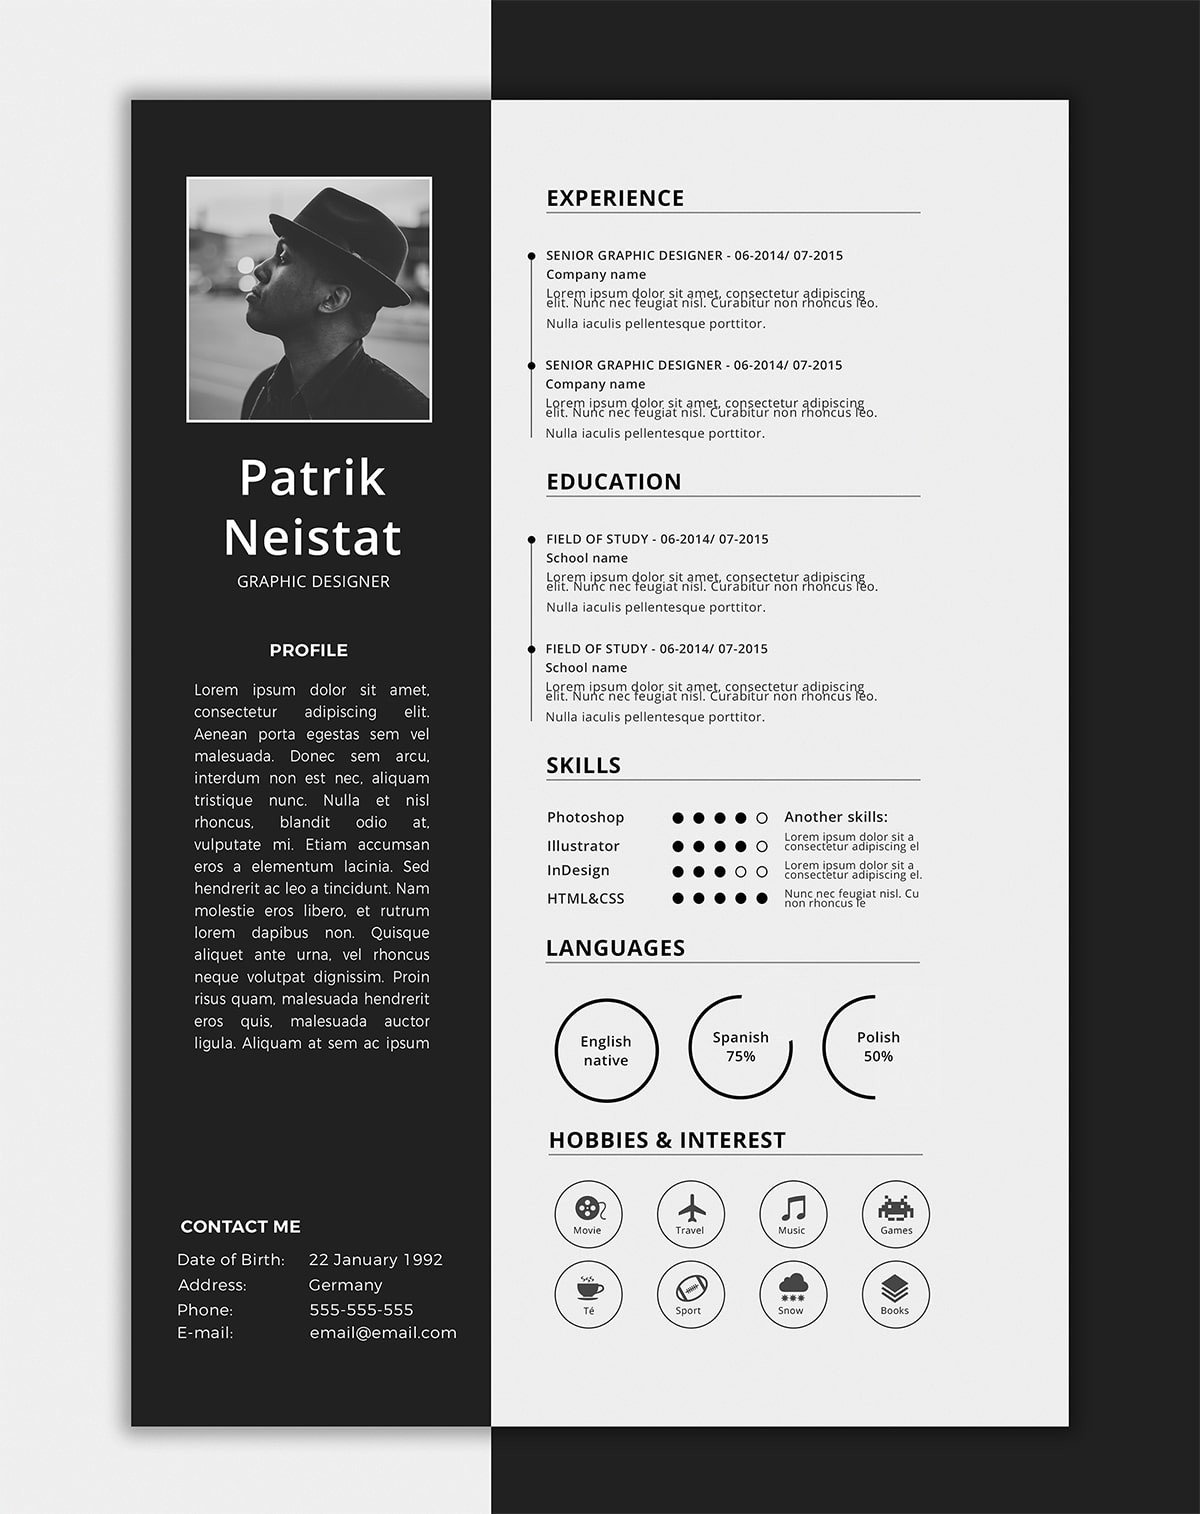 13 Photoshop Illustrator Indesign Resume Templates